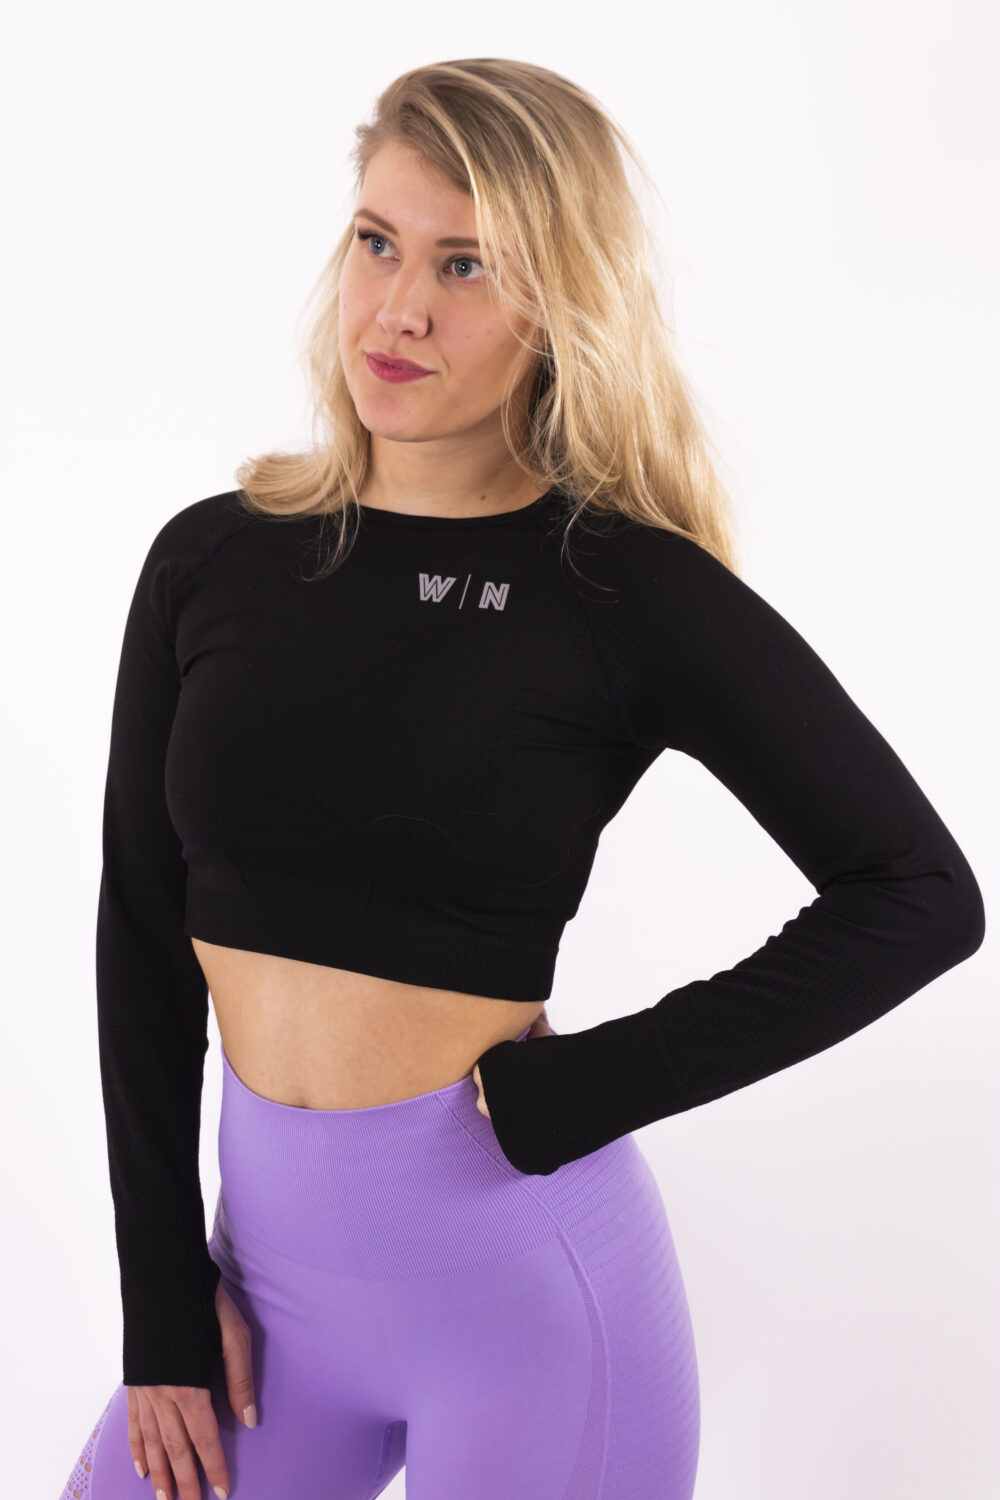 Basic black long sleeve top Woman nutrition